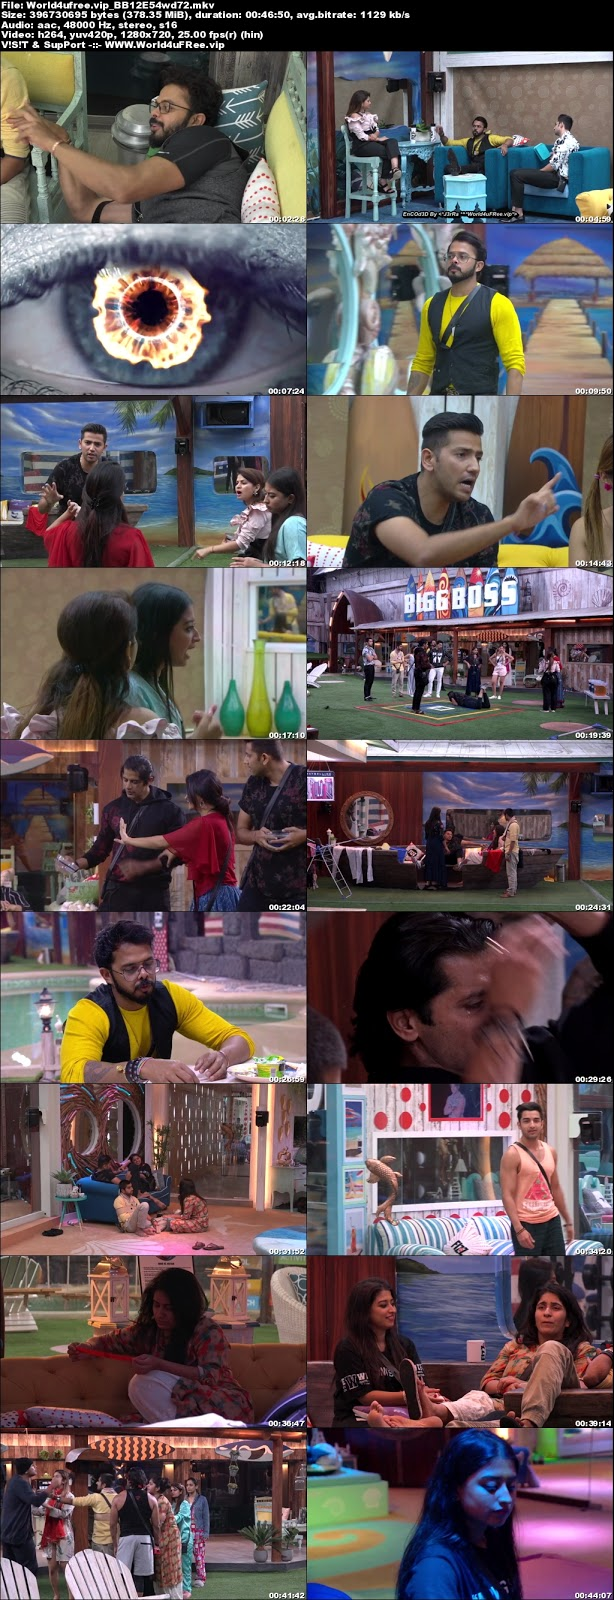 Bigg Boss 12 Episode 54 09 November 2018 720p WEBRip 400Mb x264 world4ufree.fun tv show Episode 54 09 november 2018 world4ufree.fun 300mb 250mb 300mb compressed small size free download or watch online at world4ufree.fun